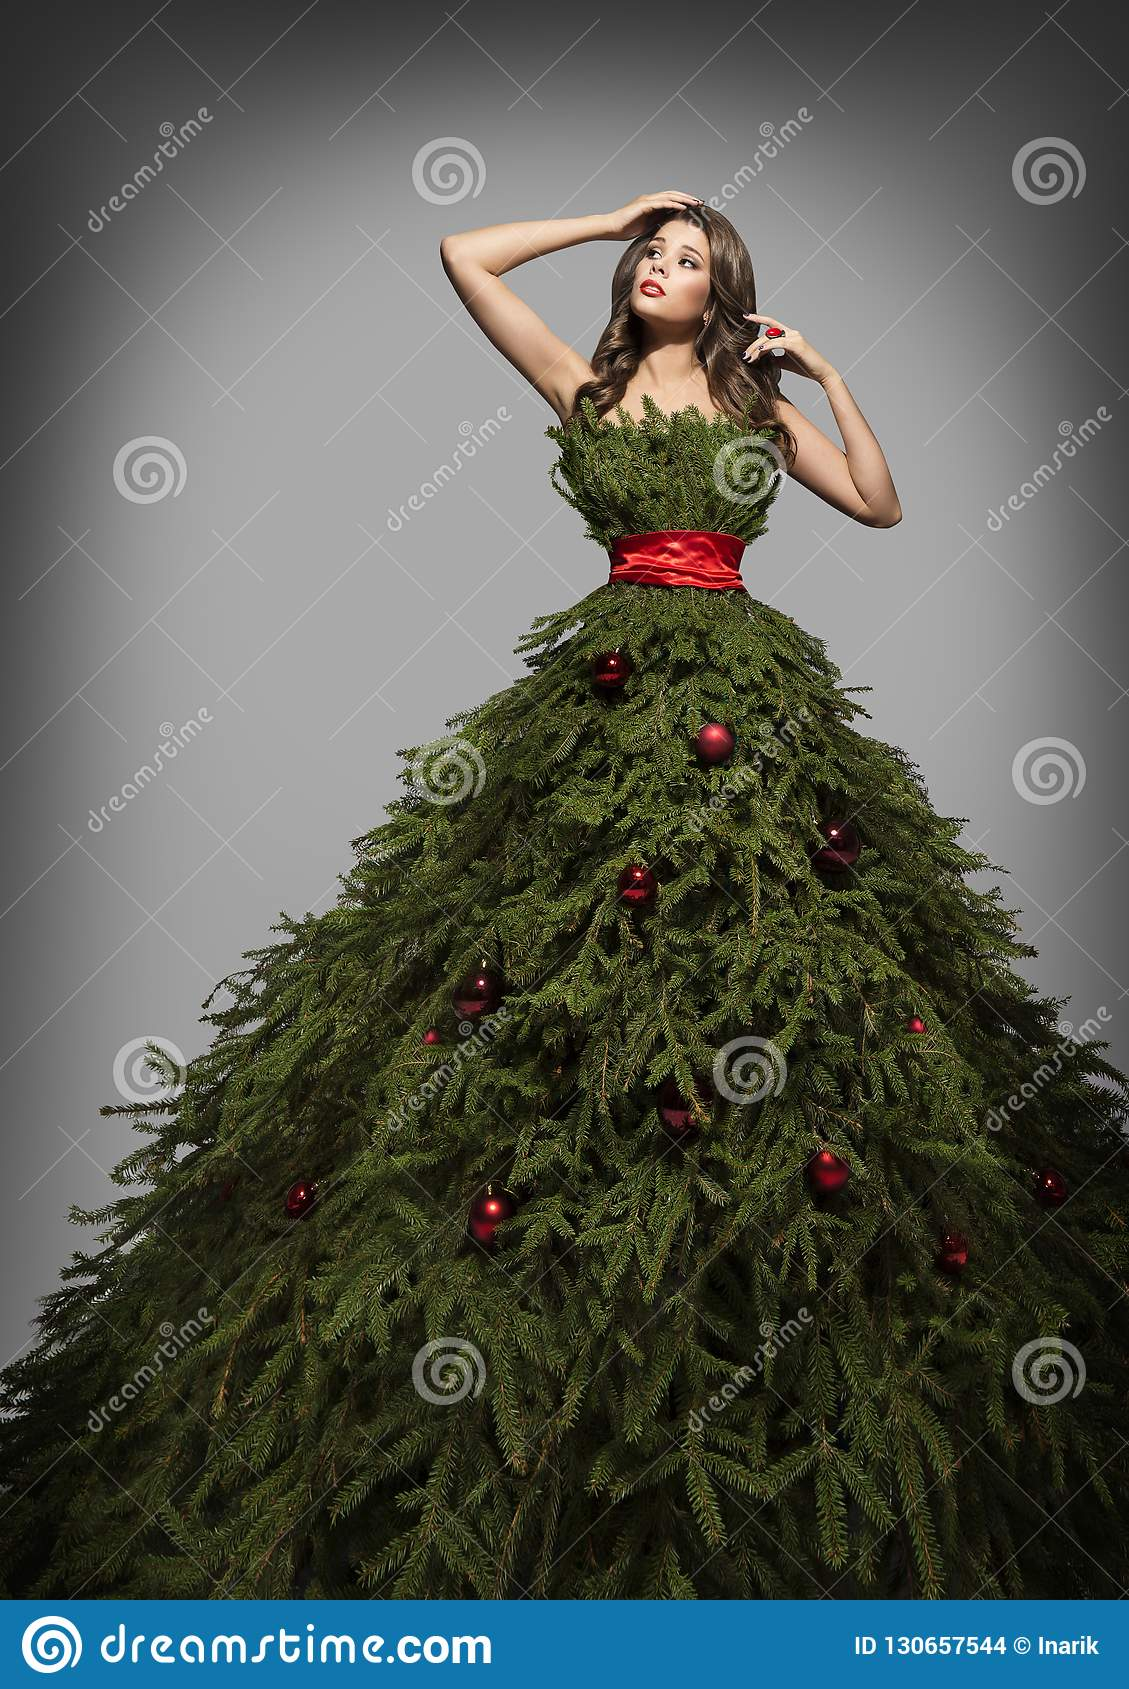 Christmas Tree Dress, Fashion Woman in Long Green Xmas Gown